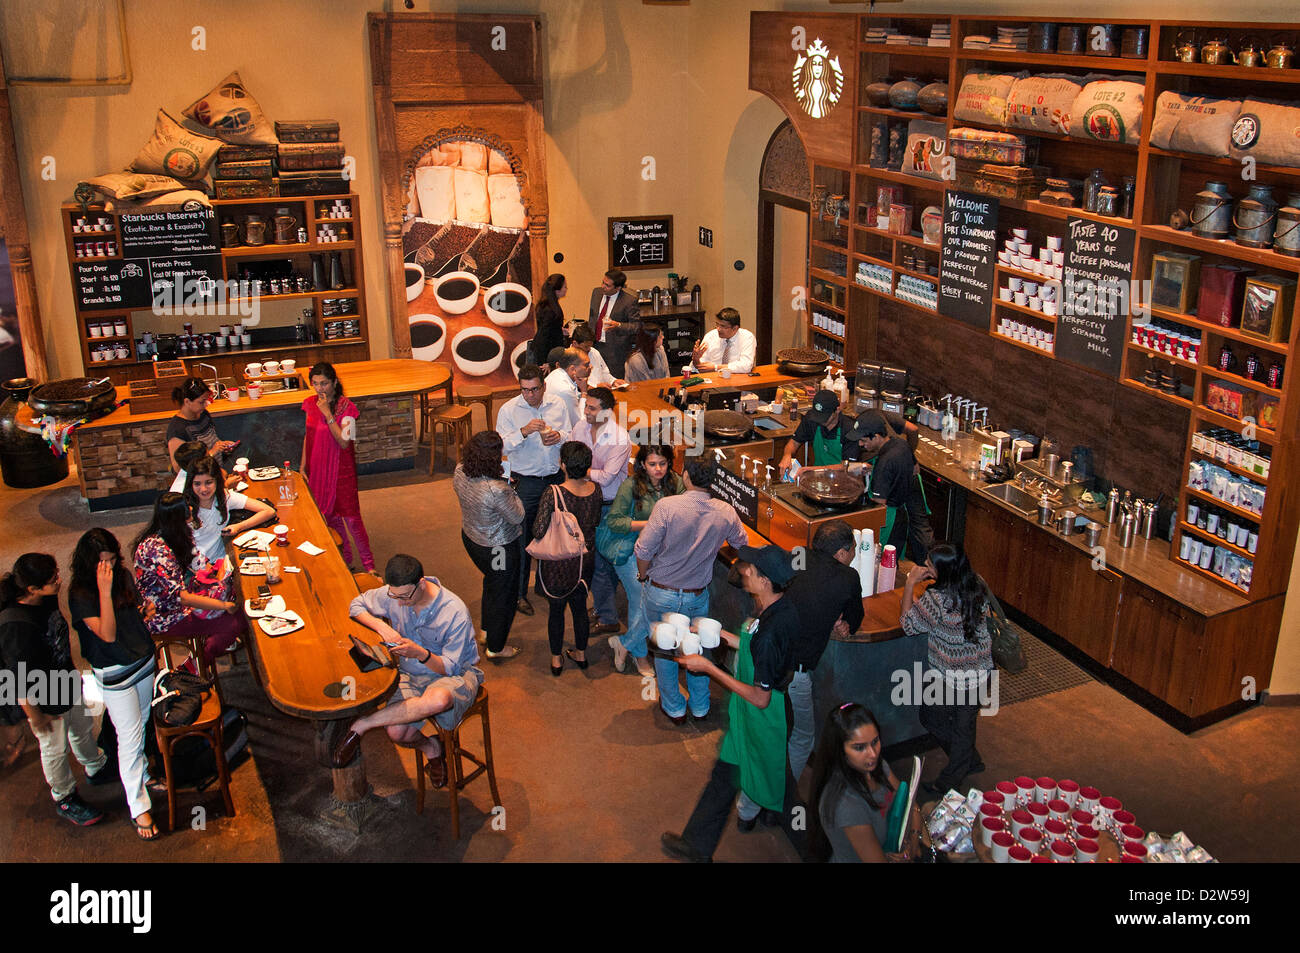 Starbucks Coffee trendy cool Mumbai ( Bombay ) café bar India Immagini Stock